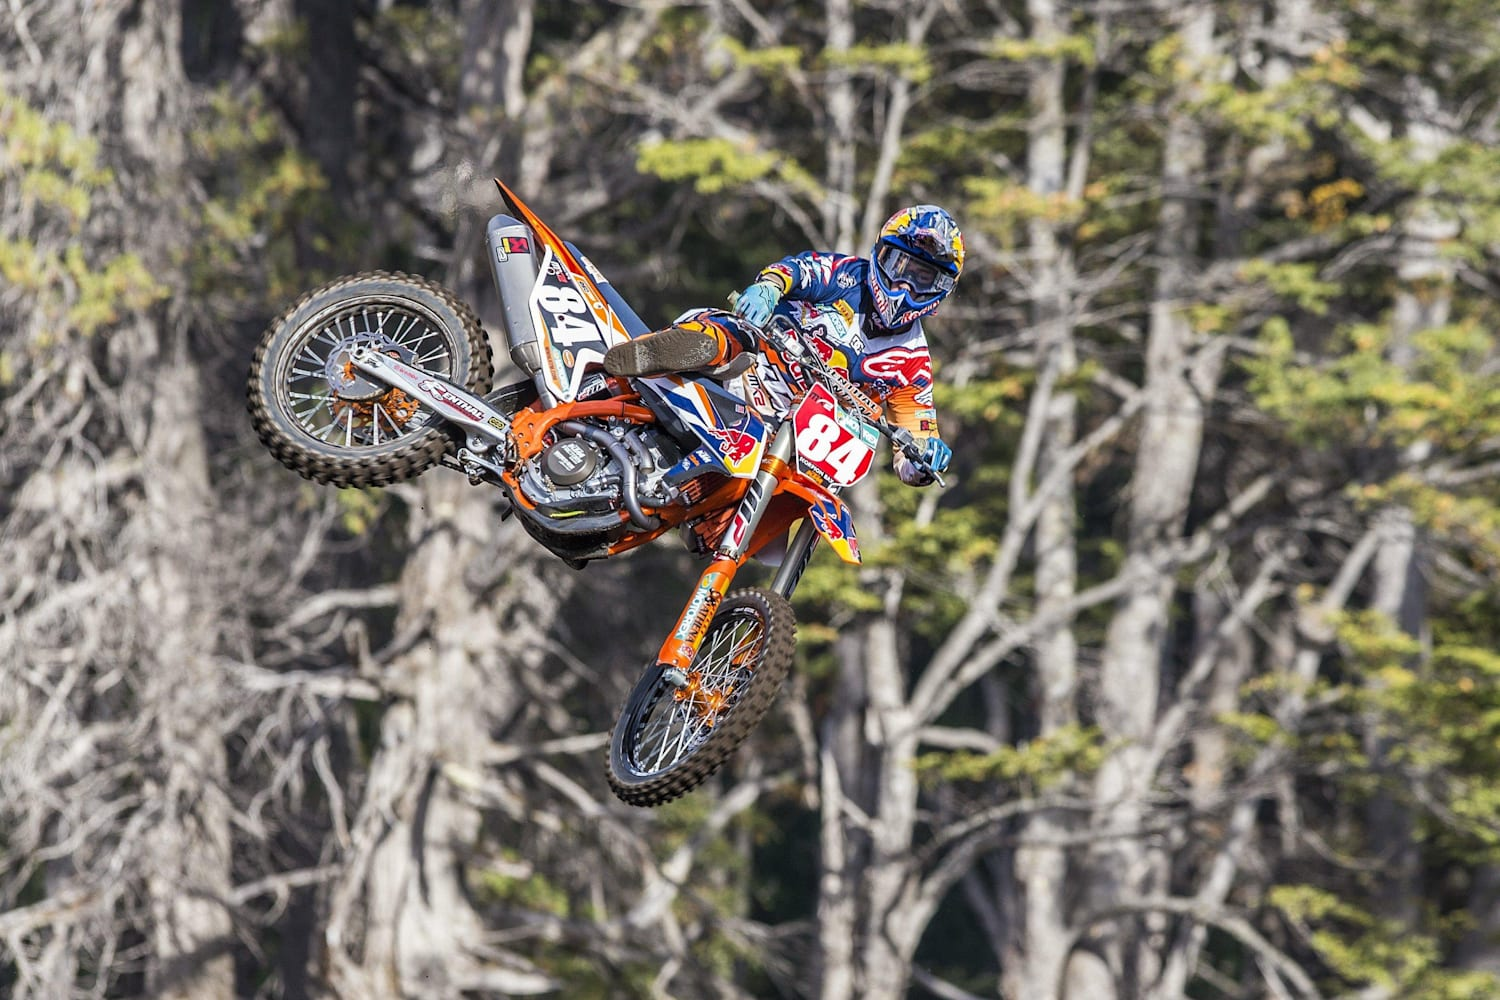 Best Beginner Motocross Bikes 5 Choices For Newcomers